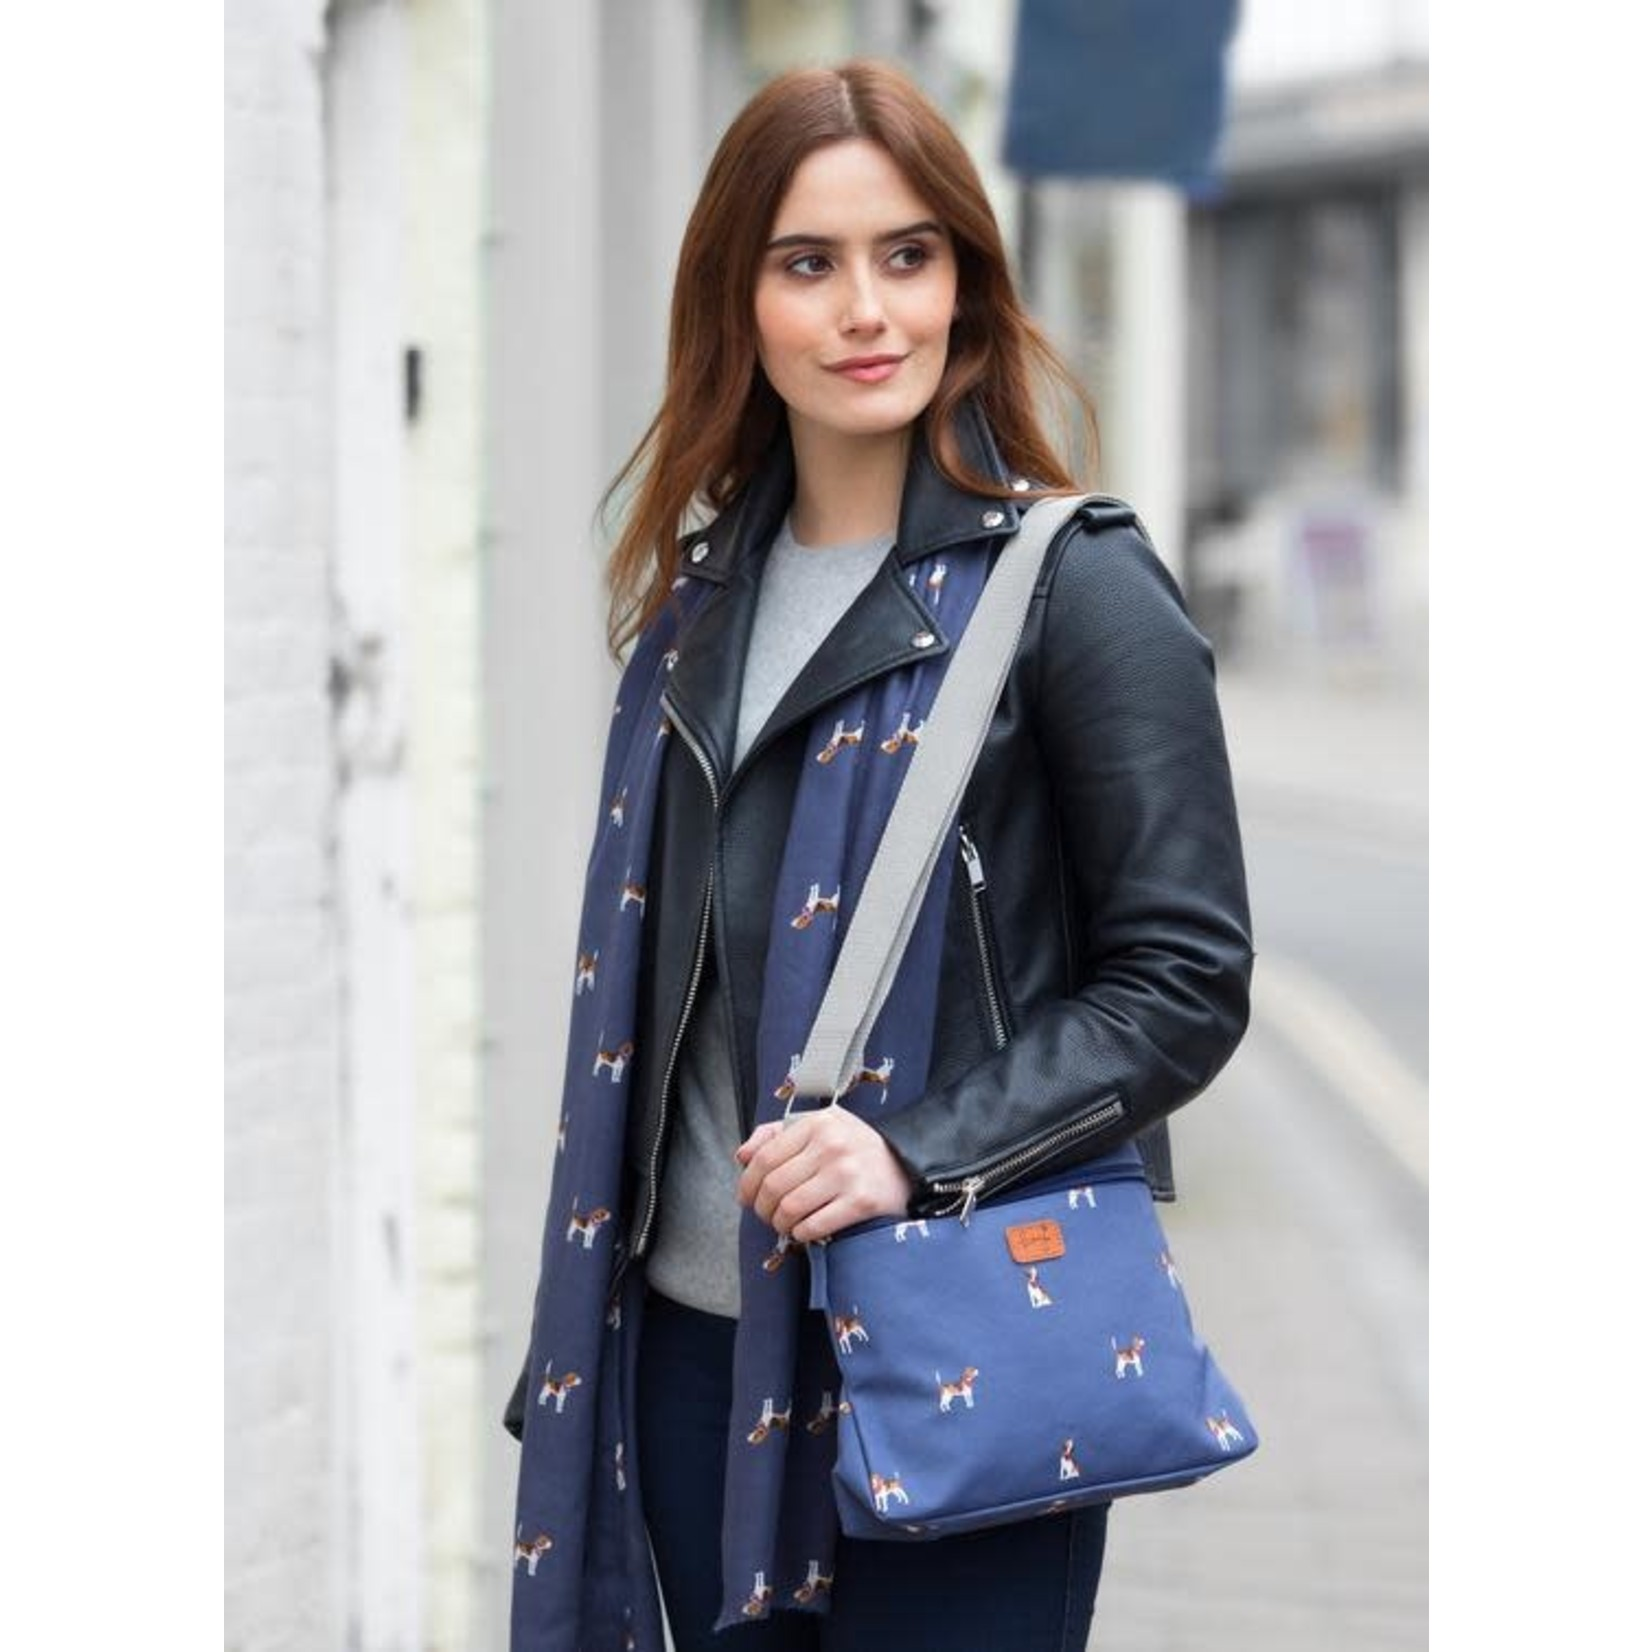 Peony Accessories Beagles Scarf in Navy